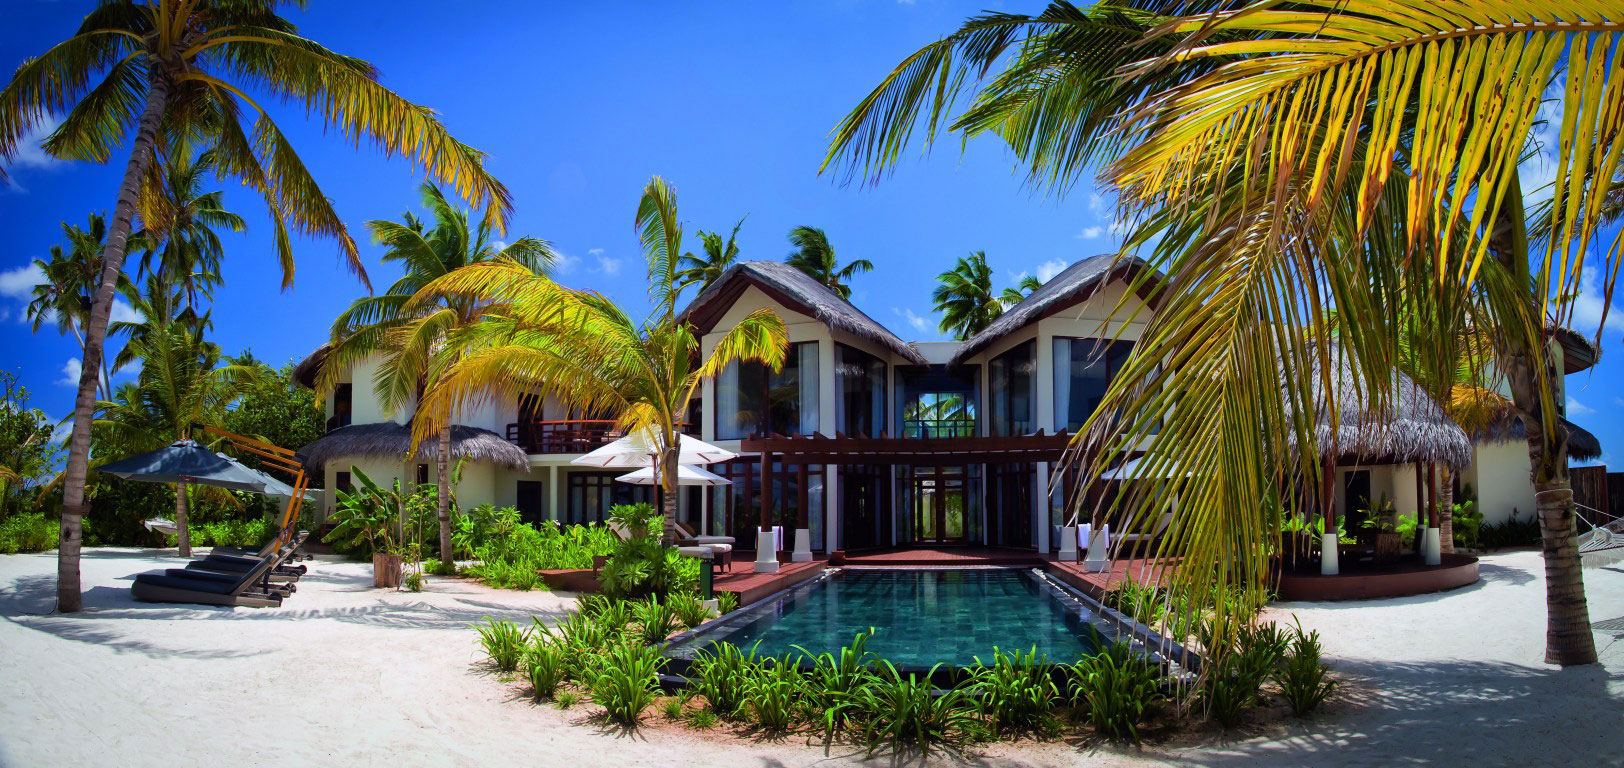 Constance-Halaveli-Maldives-Resort-13